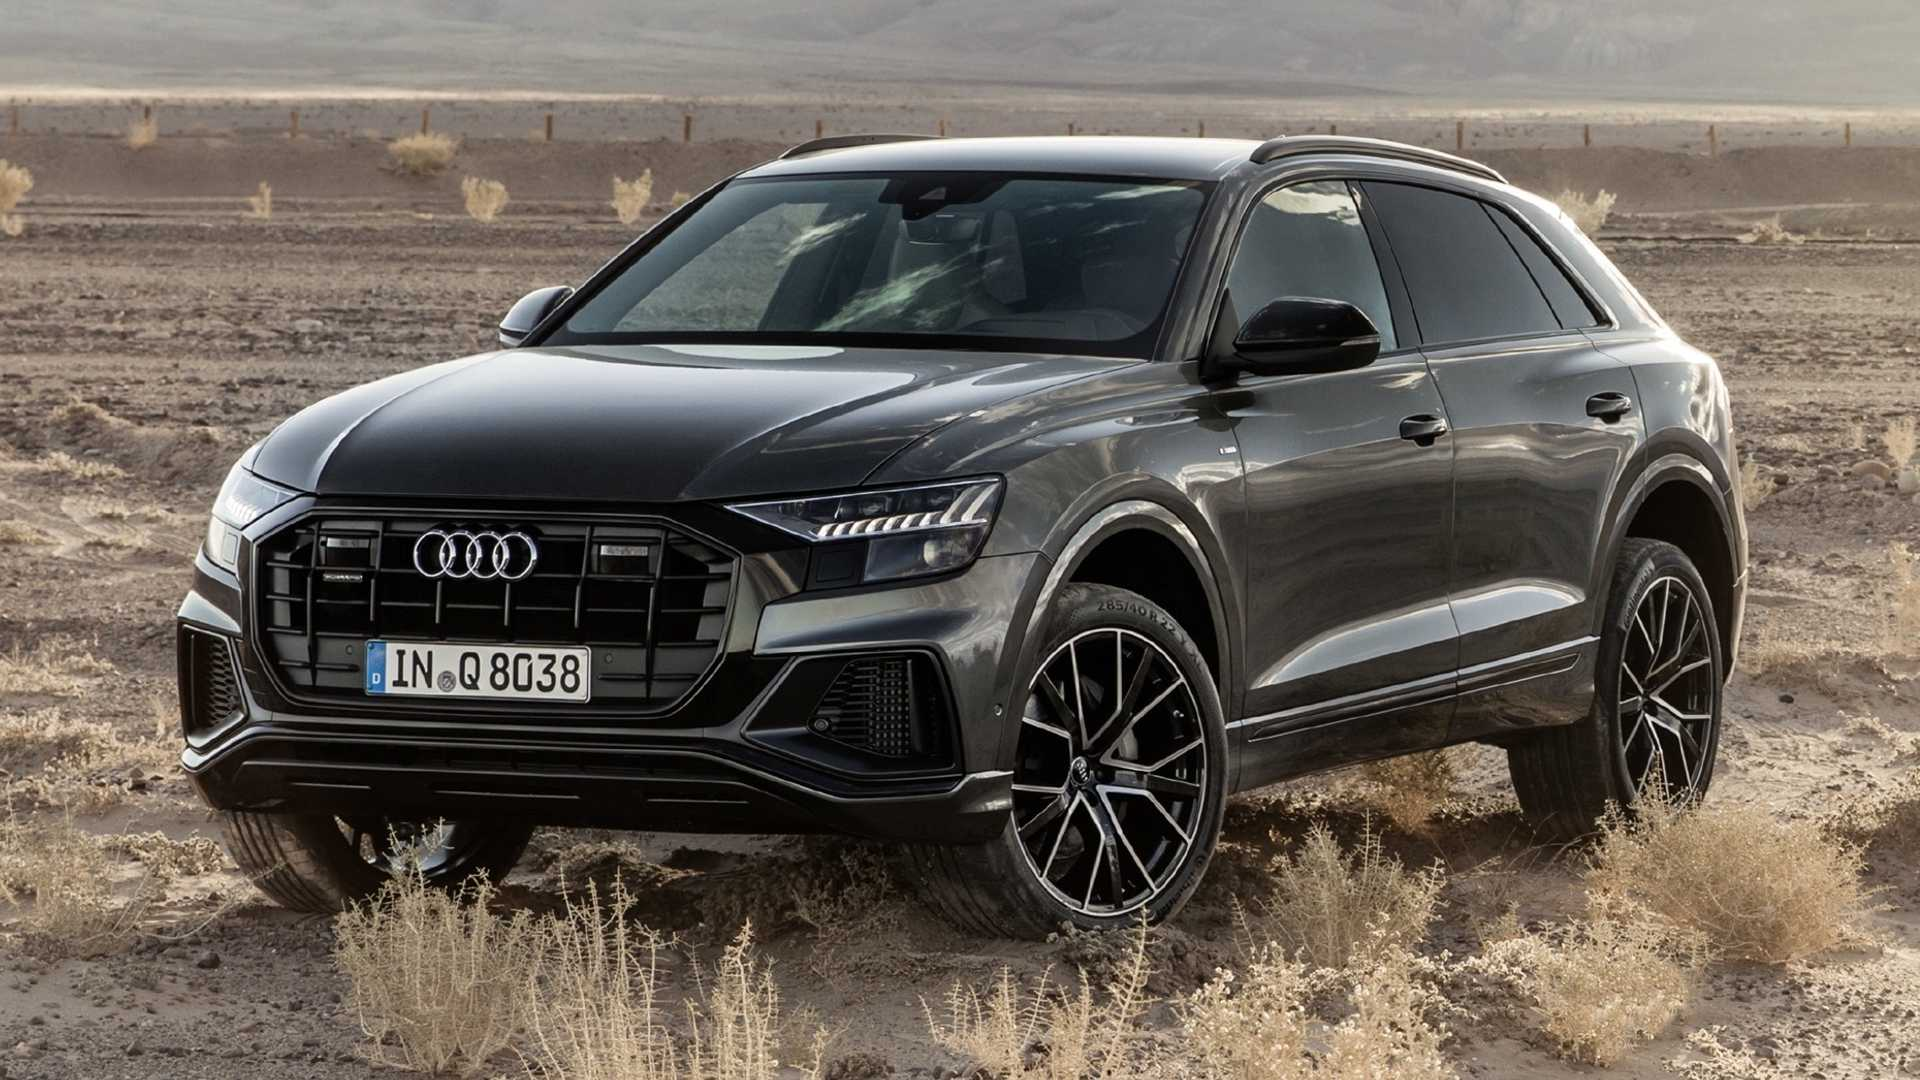 17 A 2020 Audi Q8 Pictures